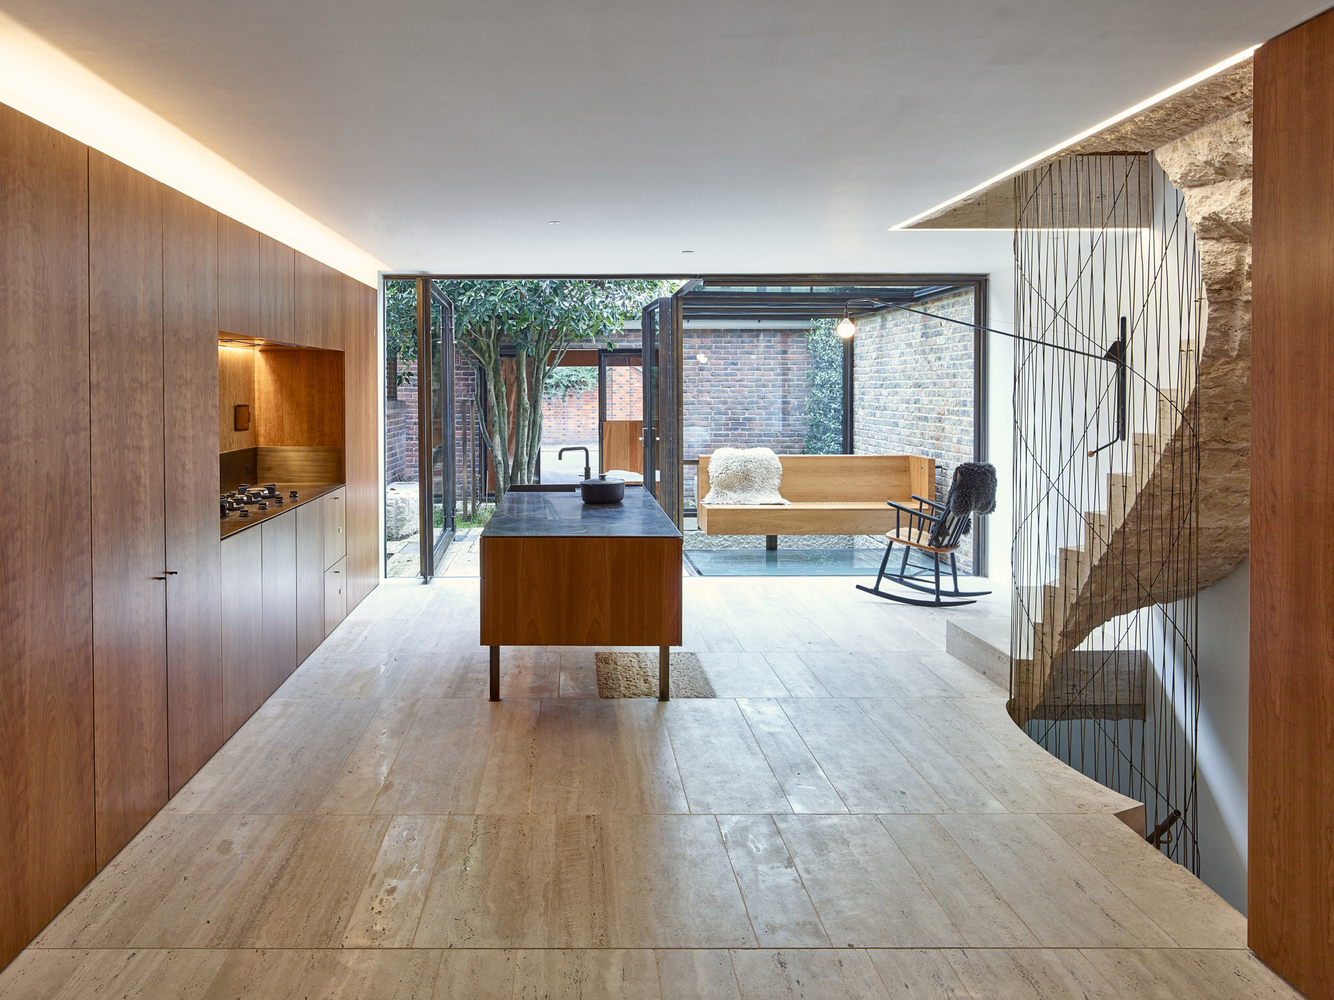 Caroline Place / Amin Taha Architects + GROUPWORK